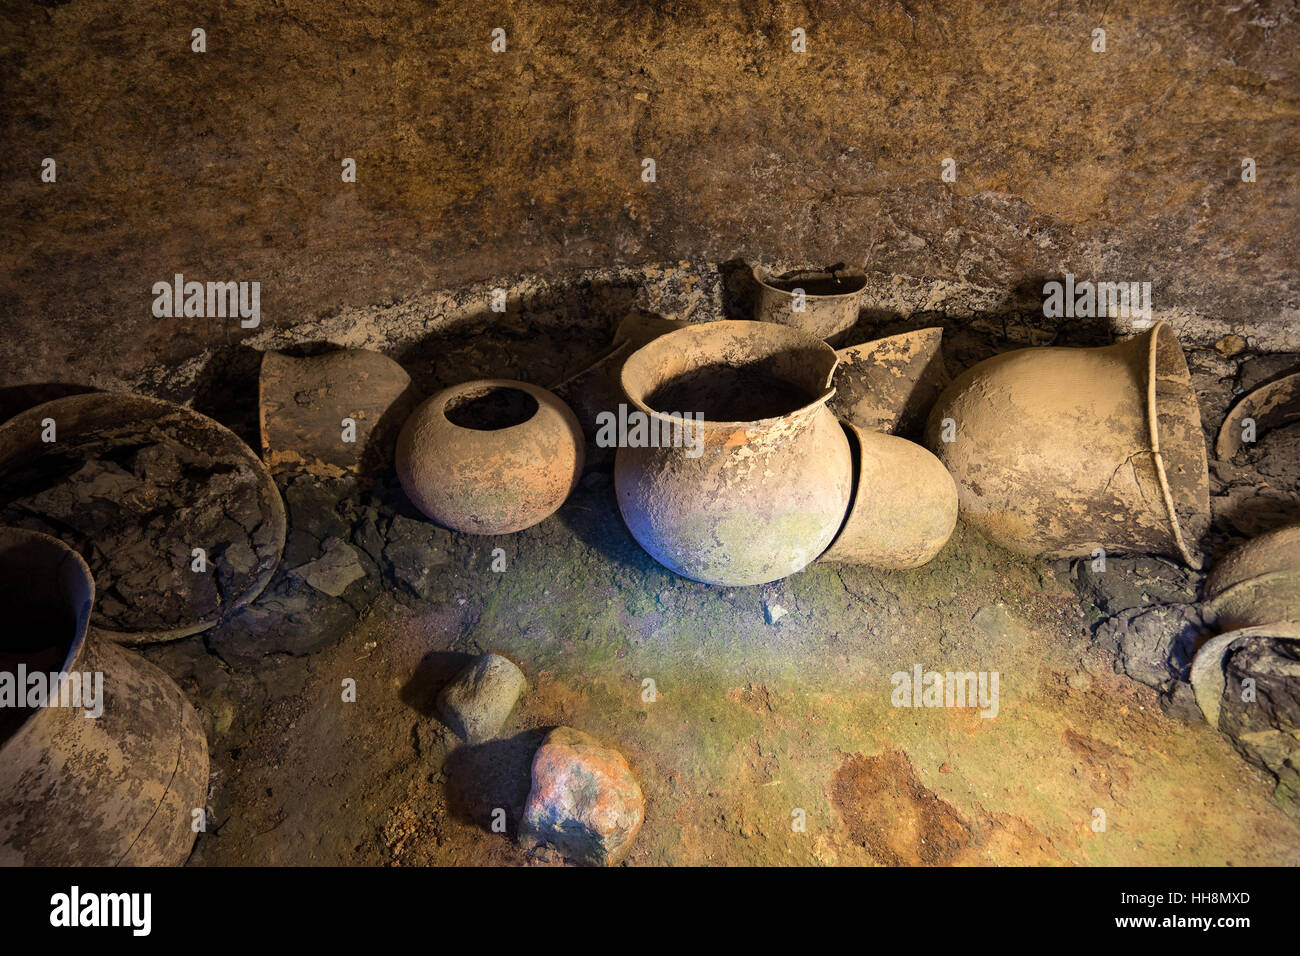 Pre-colombian ceramic urns in a tomb in Tierradentro Colombia - Stock Image